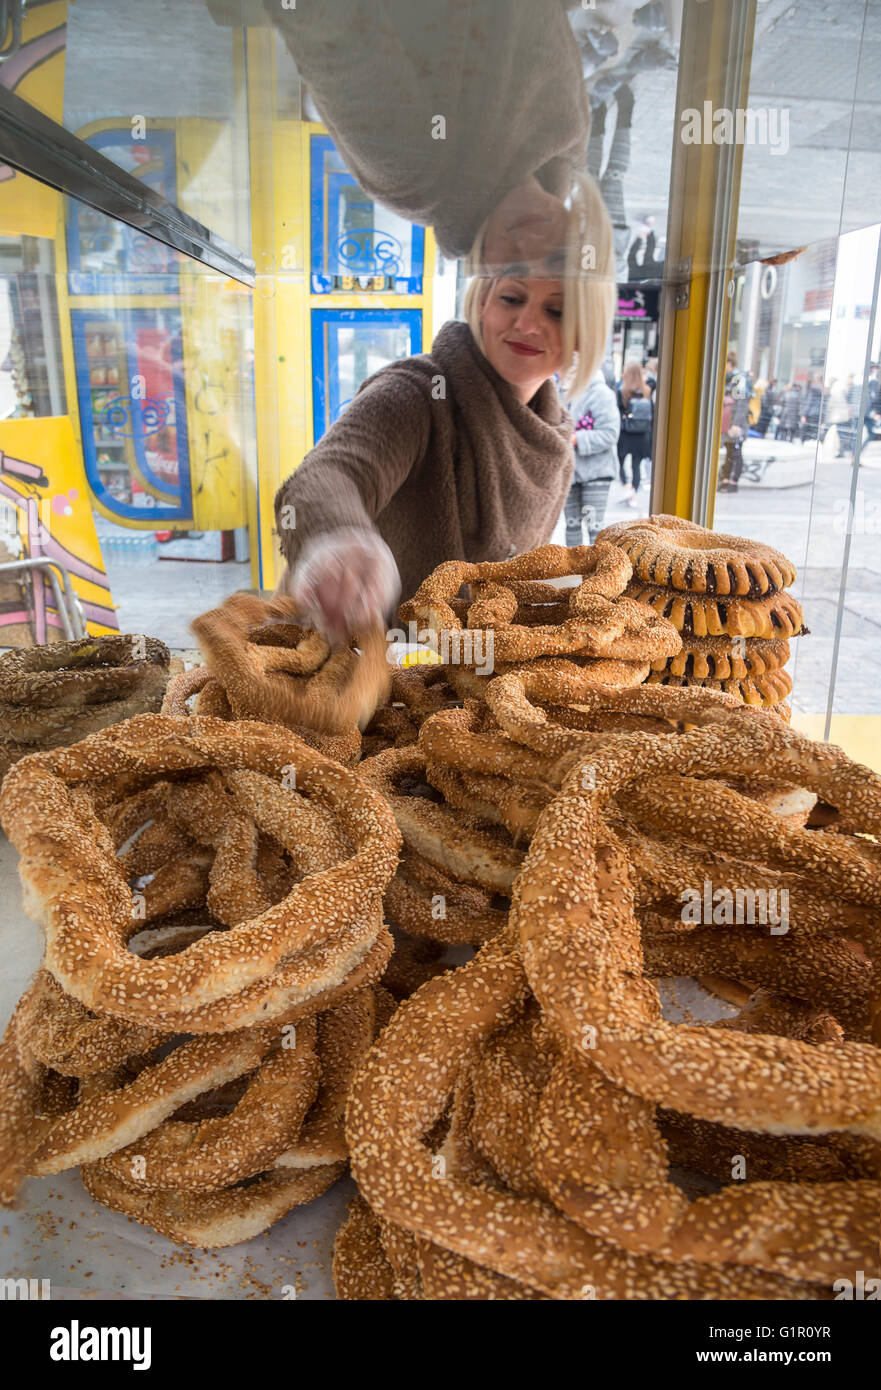 Selling koulouri (bred rings) from a kiosk in Ermou street in the centre of Athens, Greece. - Stock Image